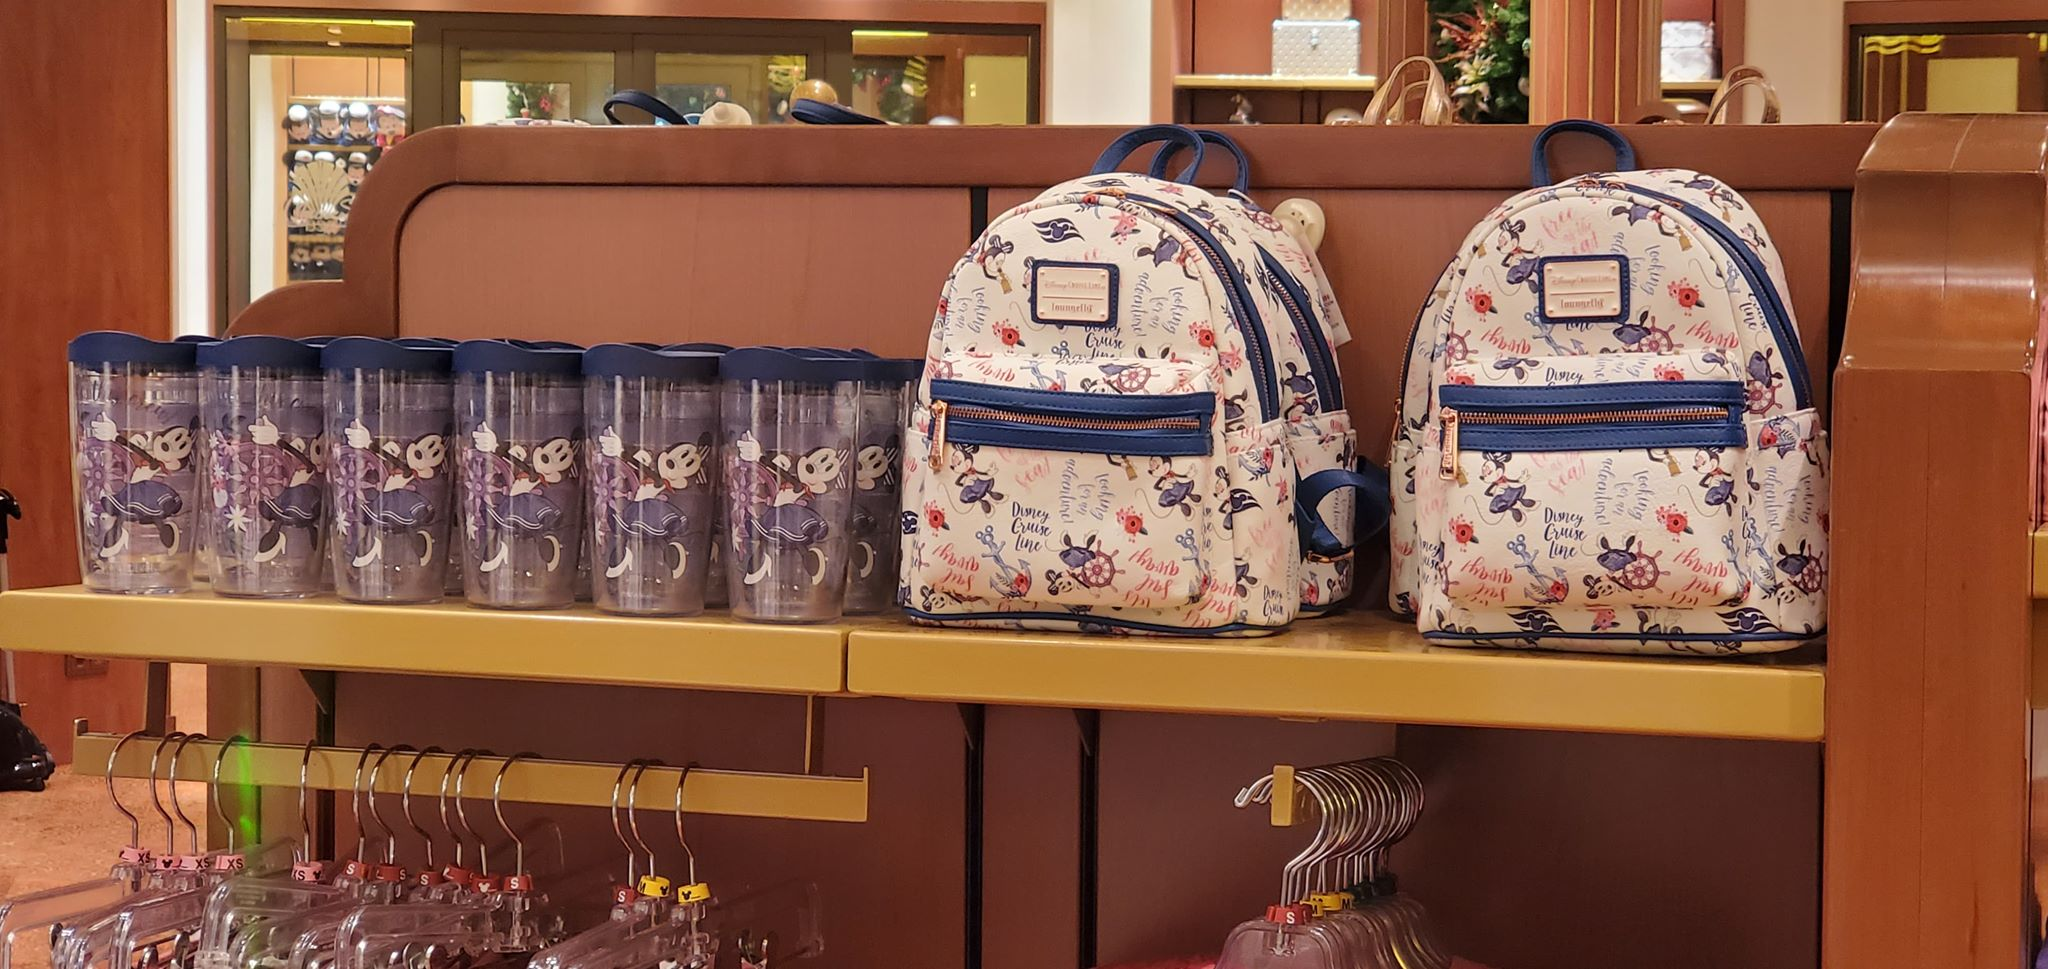 Seas Every Day With The New Floral DCL Merchandise Collection 2